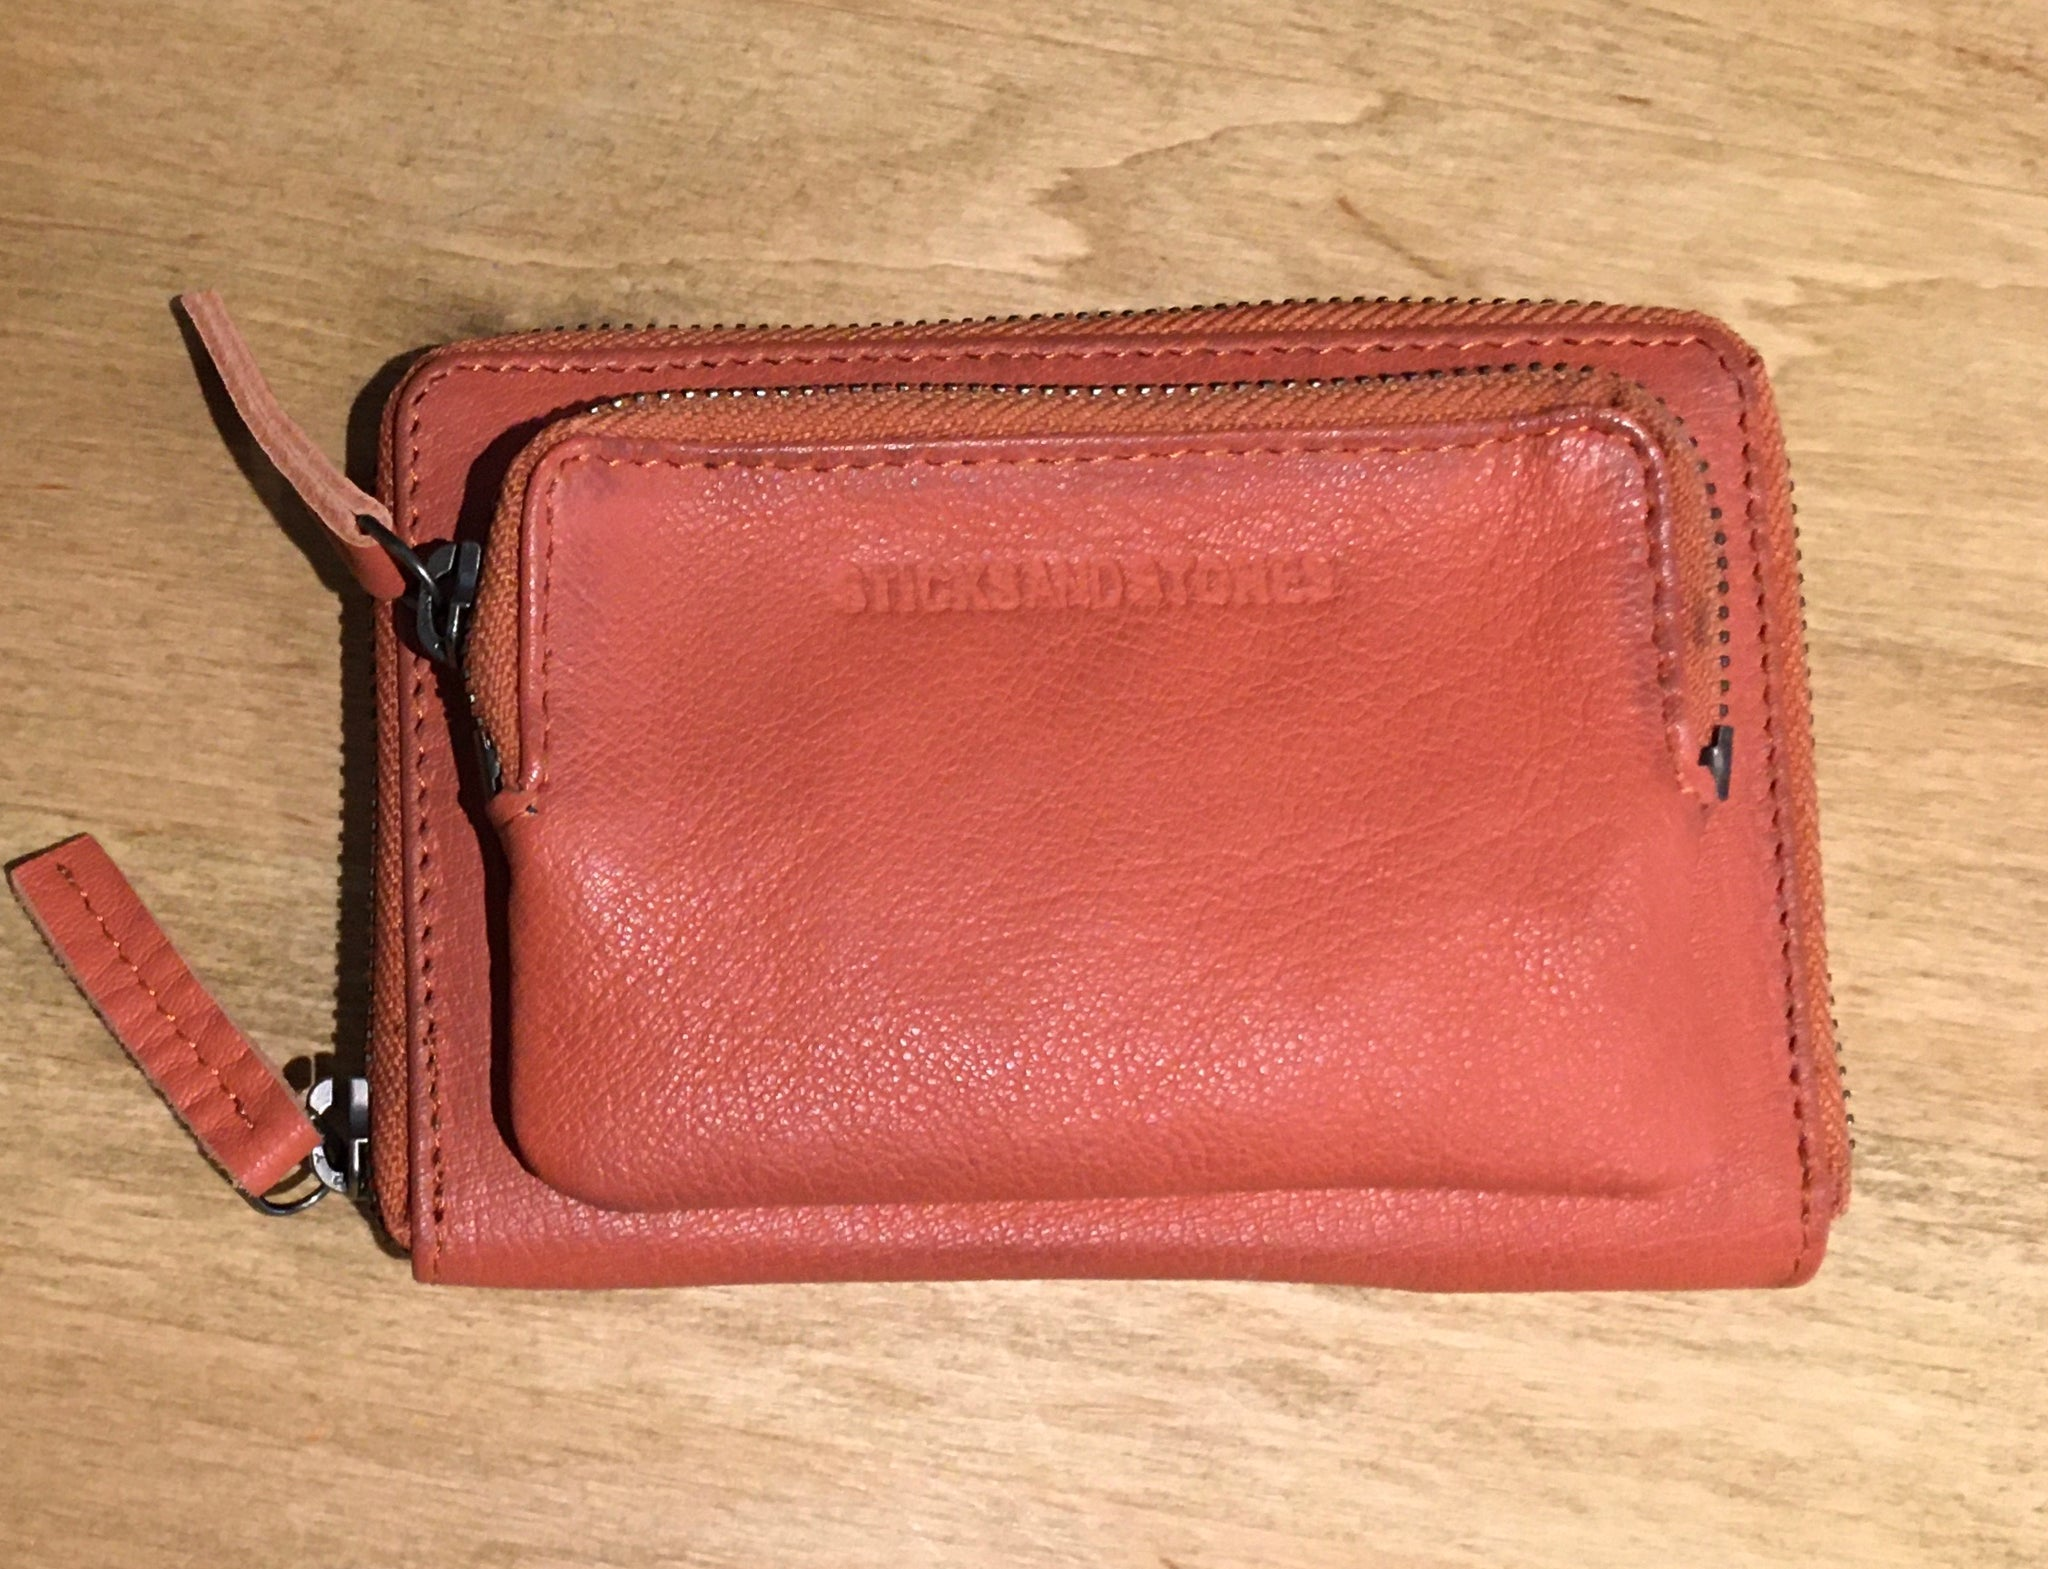 Montana Wallet in Burnt Orange and Marine Blue